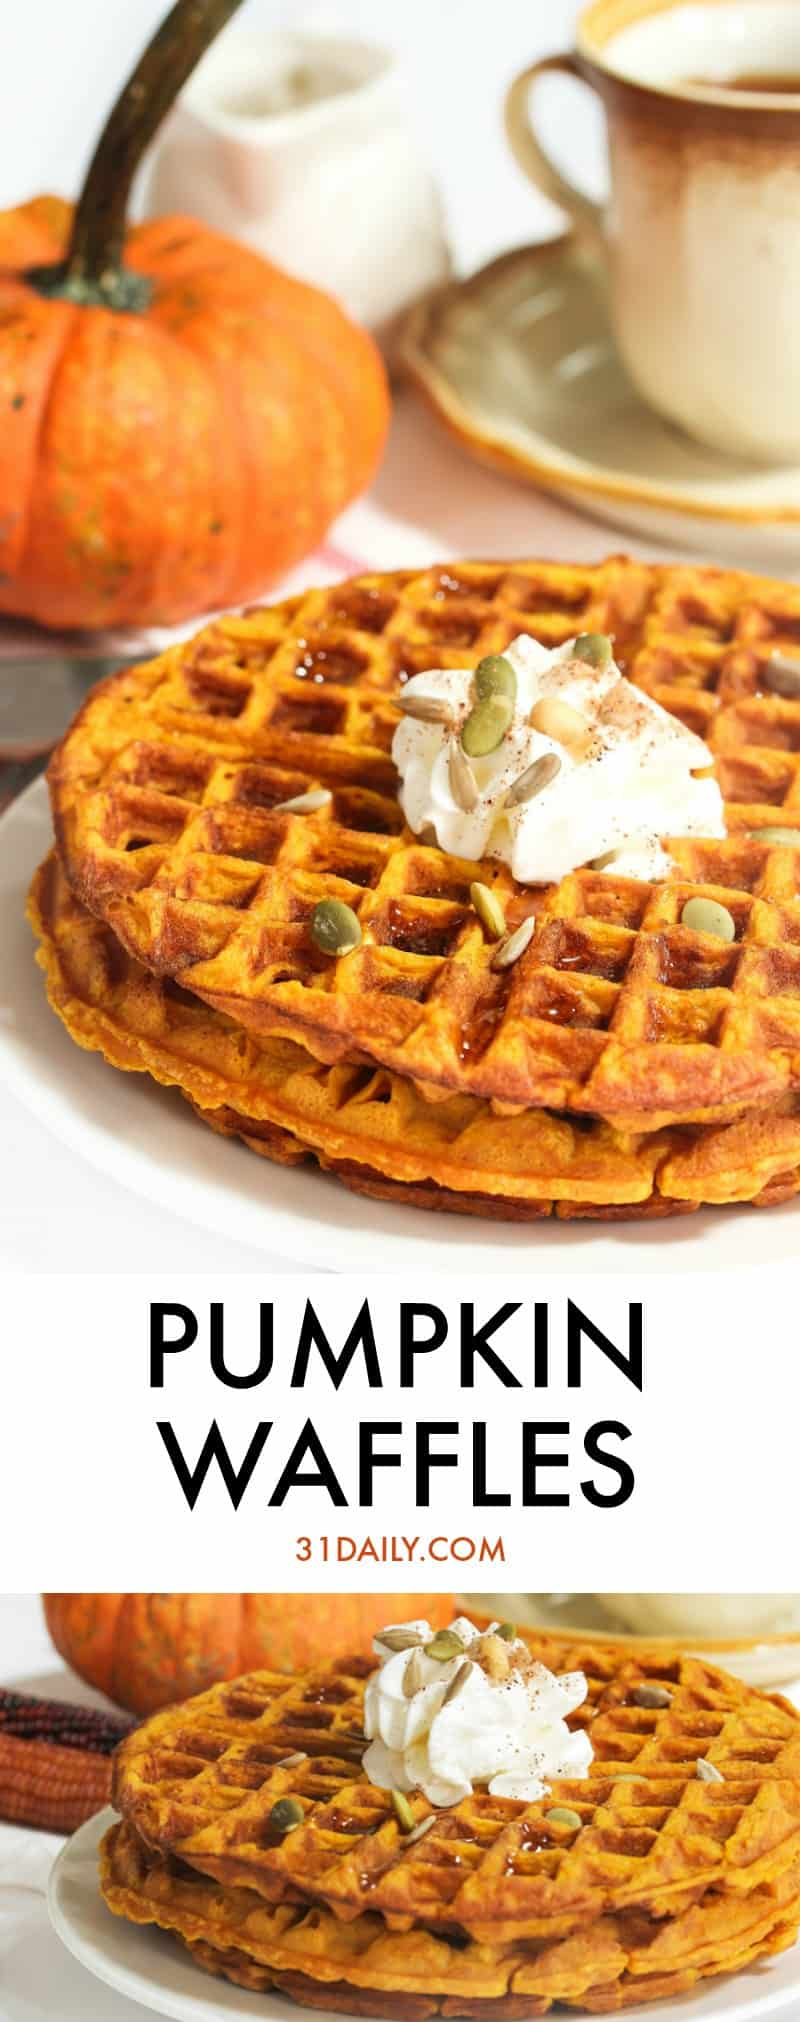 Pumpkin Waffles for Blustery Fall Mornings | 31Daily.com